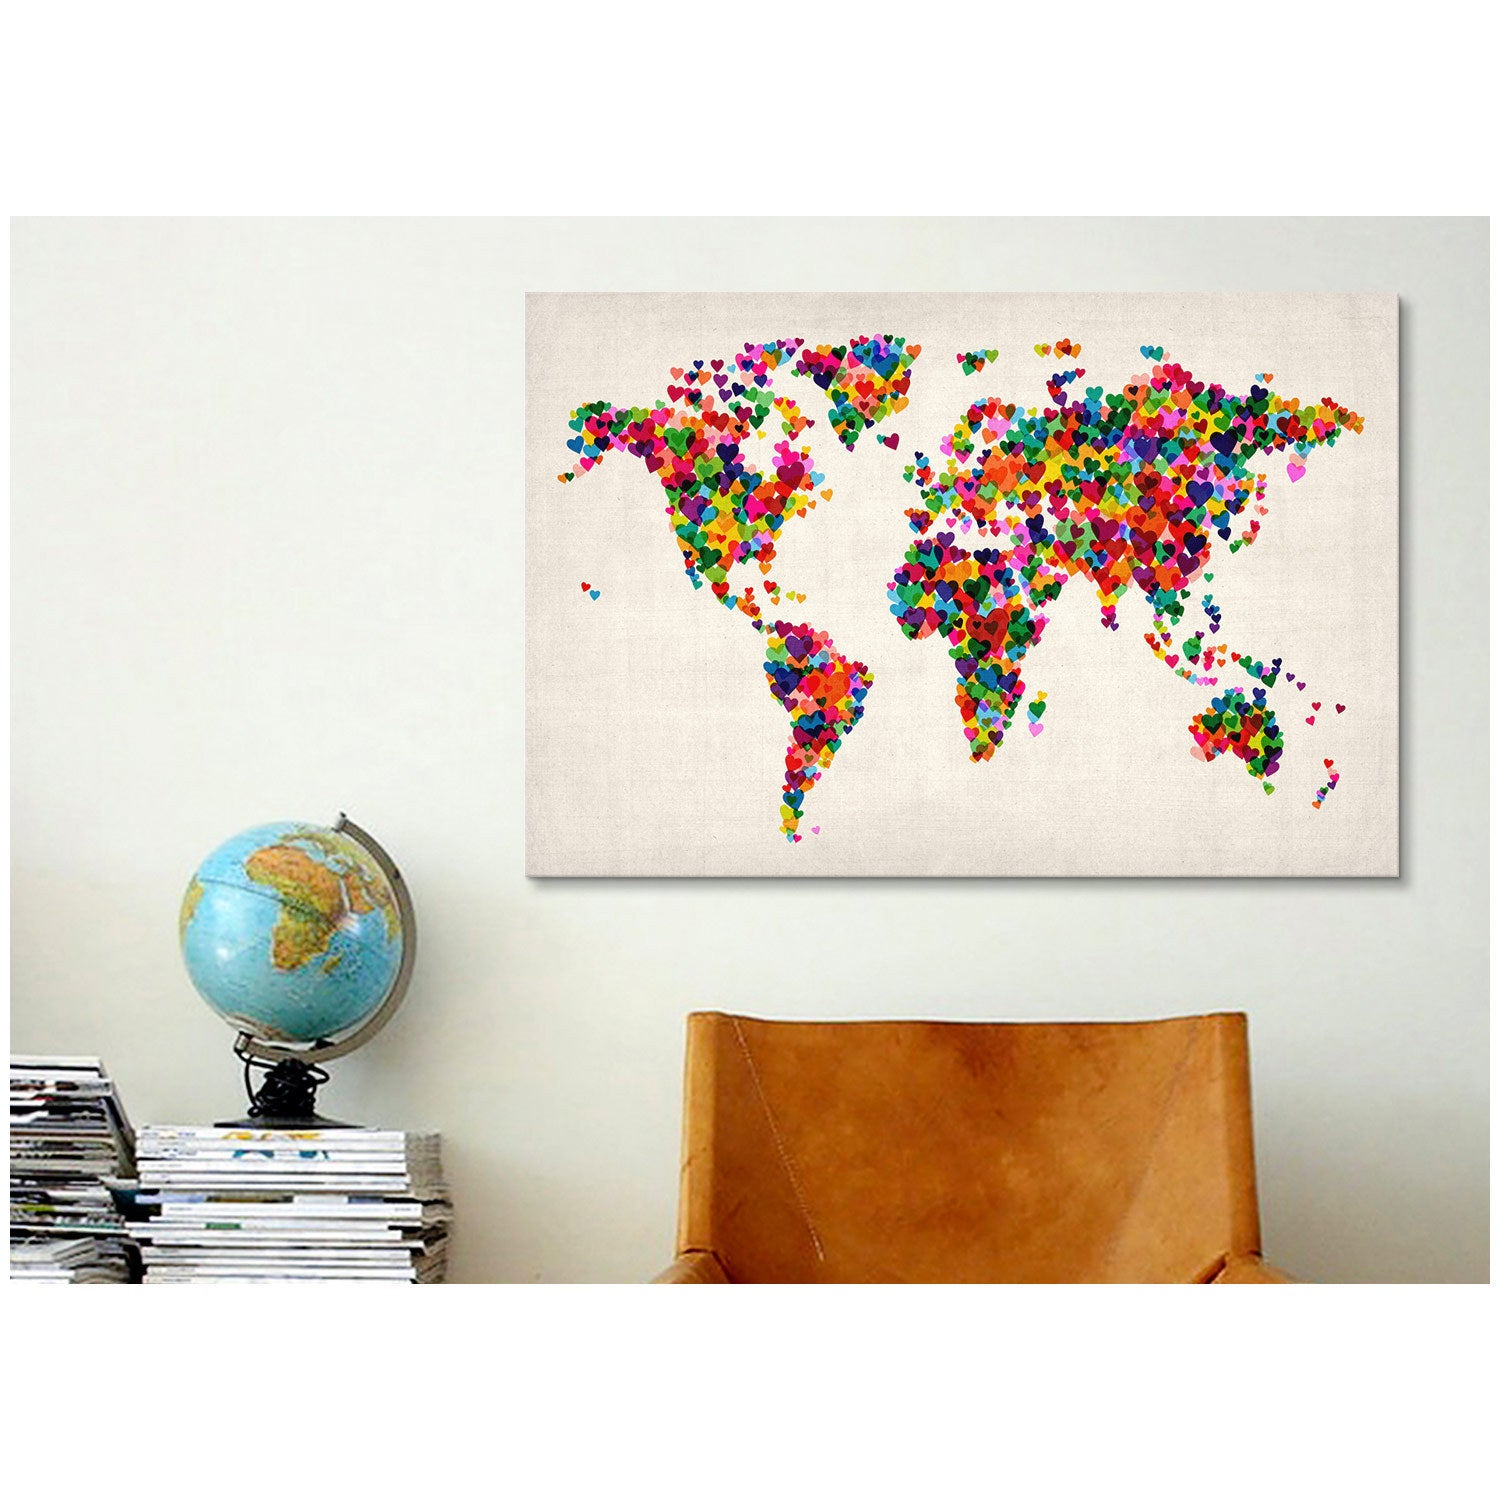 Icanvas michael thompsett world map hearts multicolor ii canvas icanvas michael thompsett world map hearts multicolor ii canvas print wall art free shipping today overstock 16810391 gumiabroncs Image collections